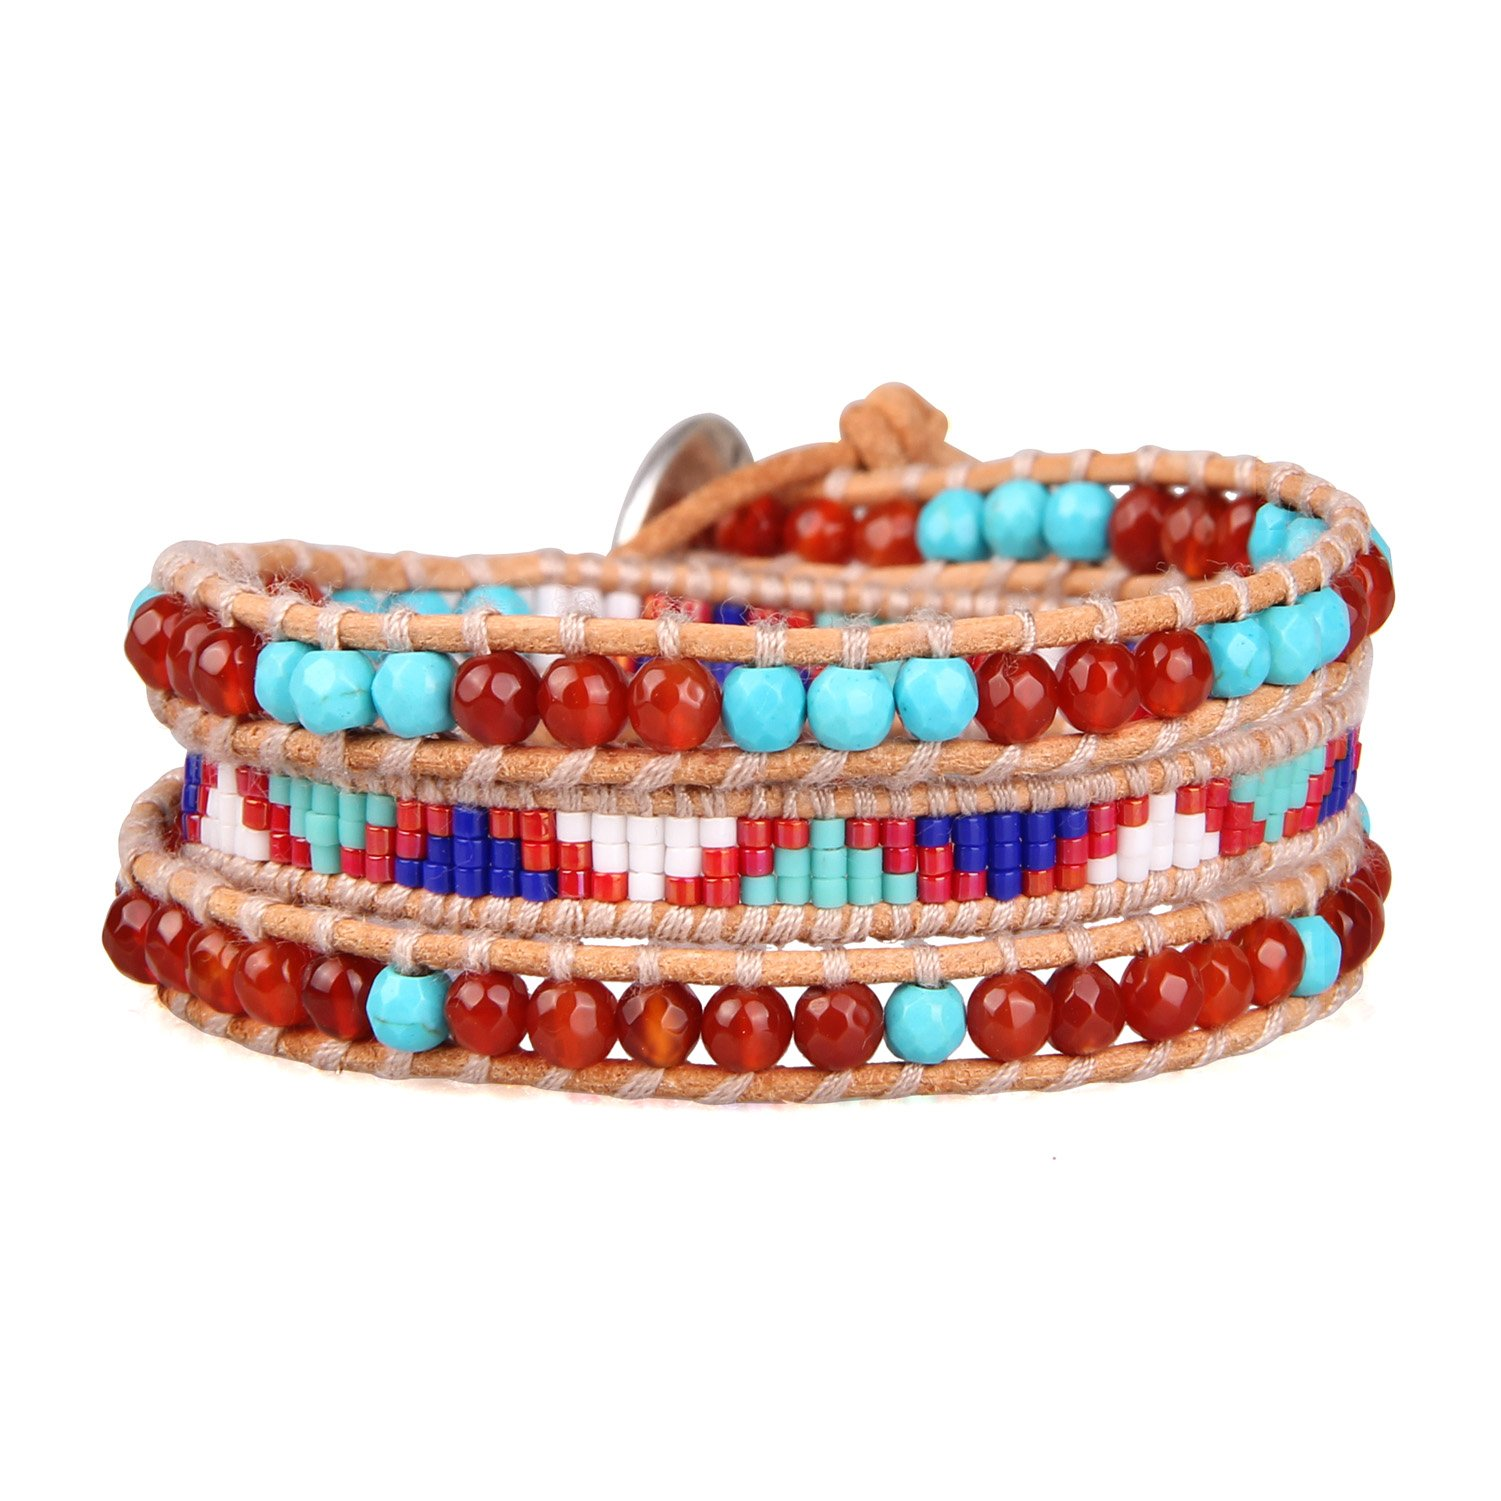 KELITCH Powder Coral Beads Original Leather Charm 3 Wrap Bracelet Handmade New Top Stretch Bracelets (Red)